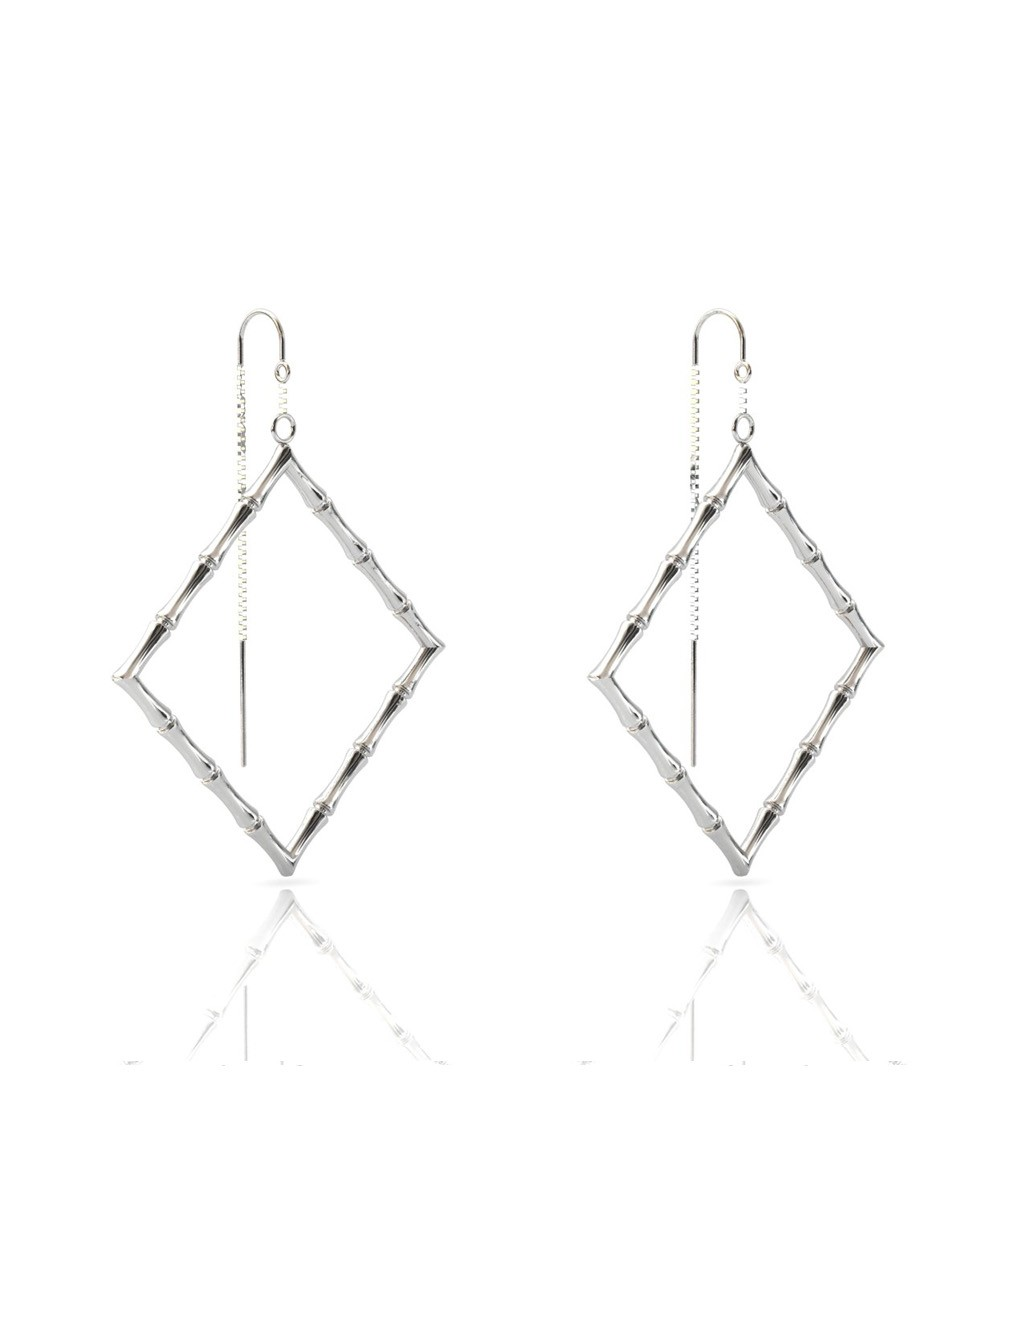 Bamboo 1 Square Earrings in 925 Sterling Silver with Palladium Rhodium-Plated Side 3D